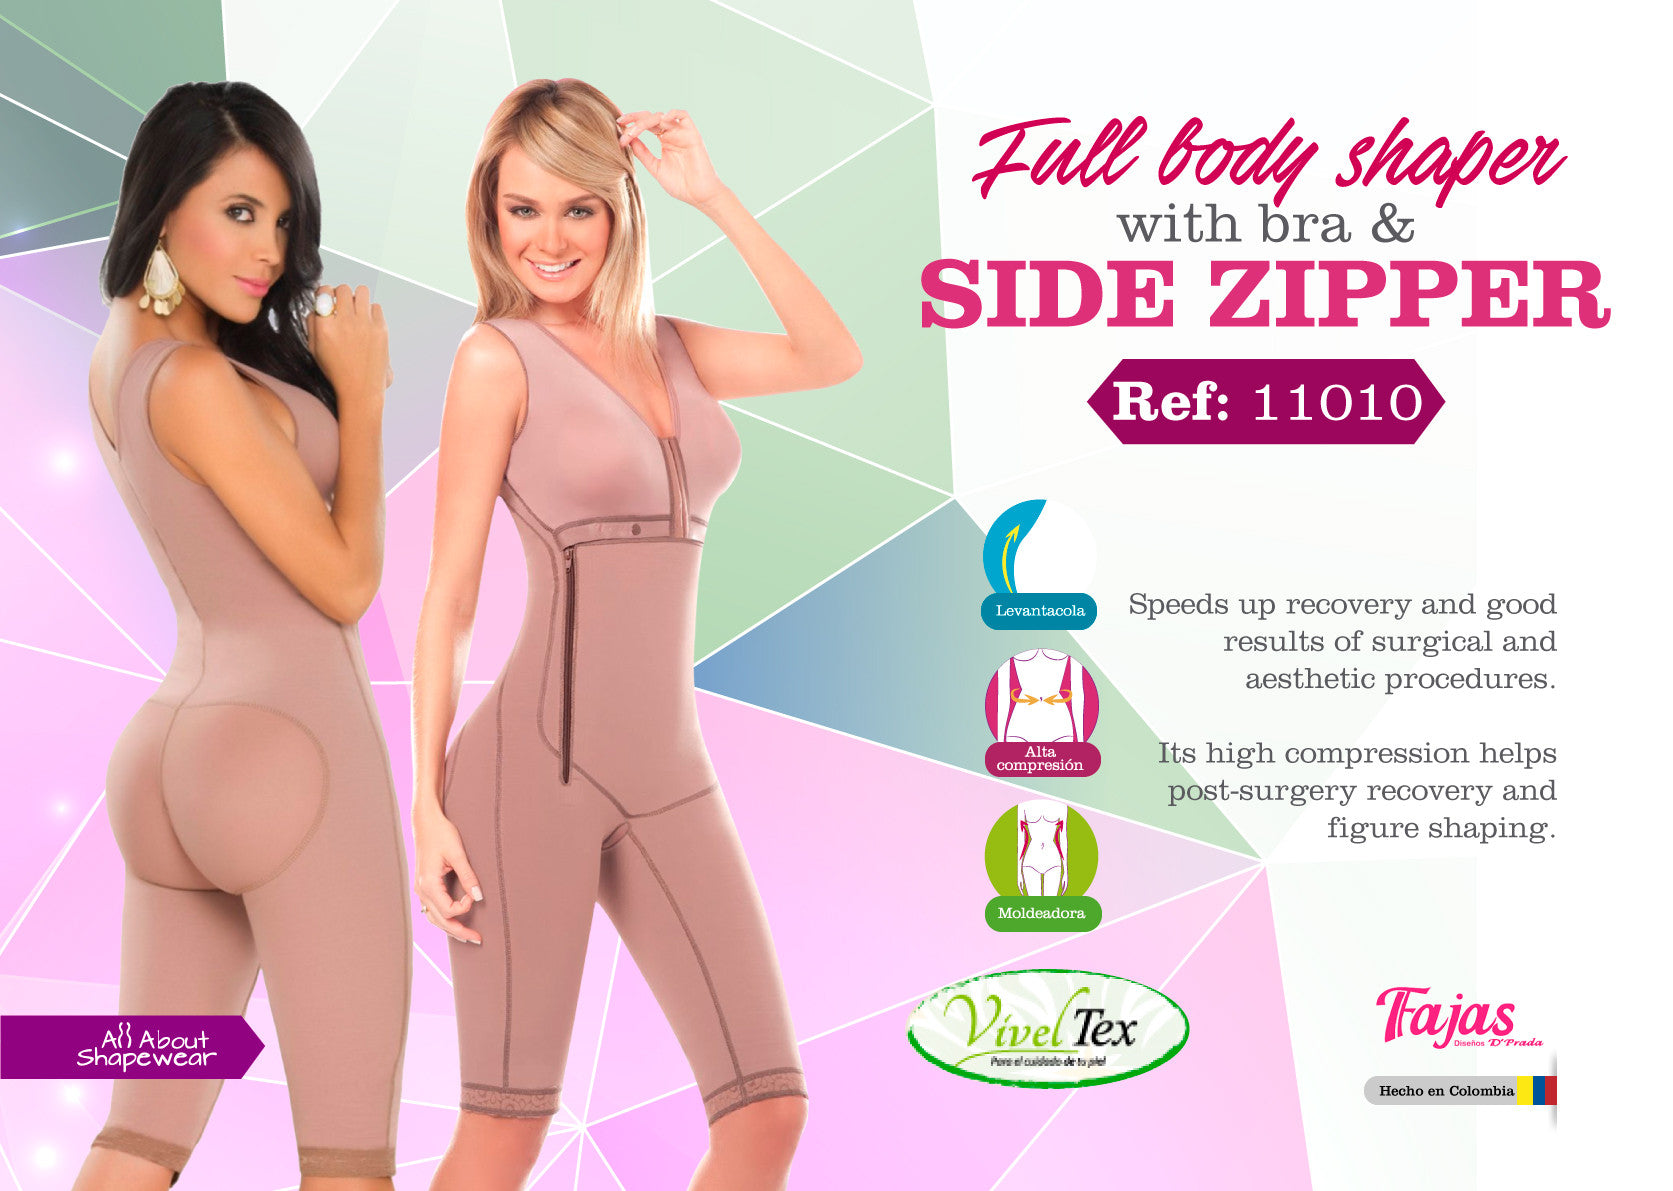 Full bodyshaper with bra side zipper Ref: 11010